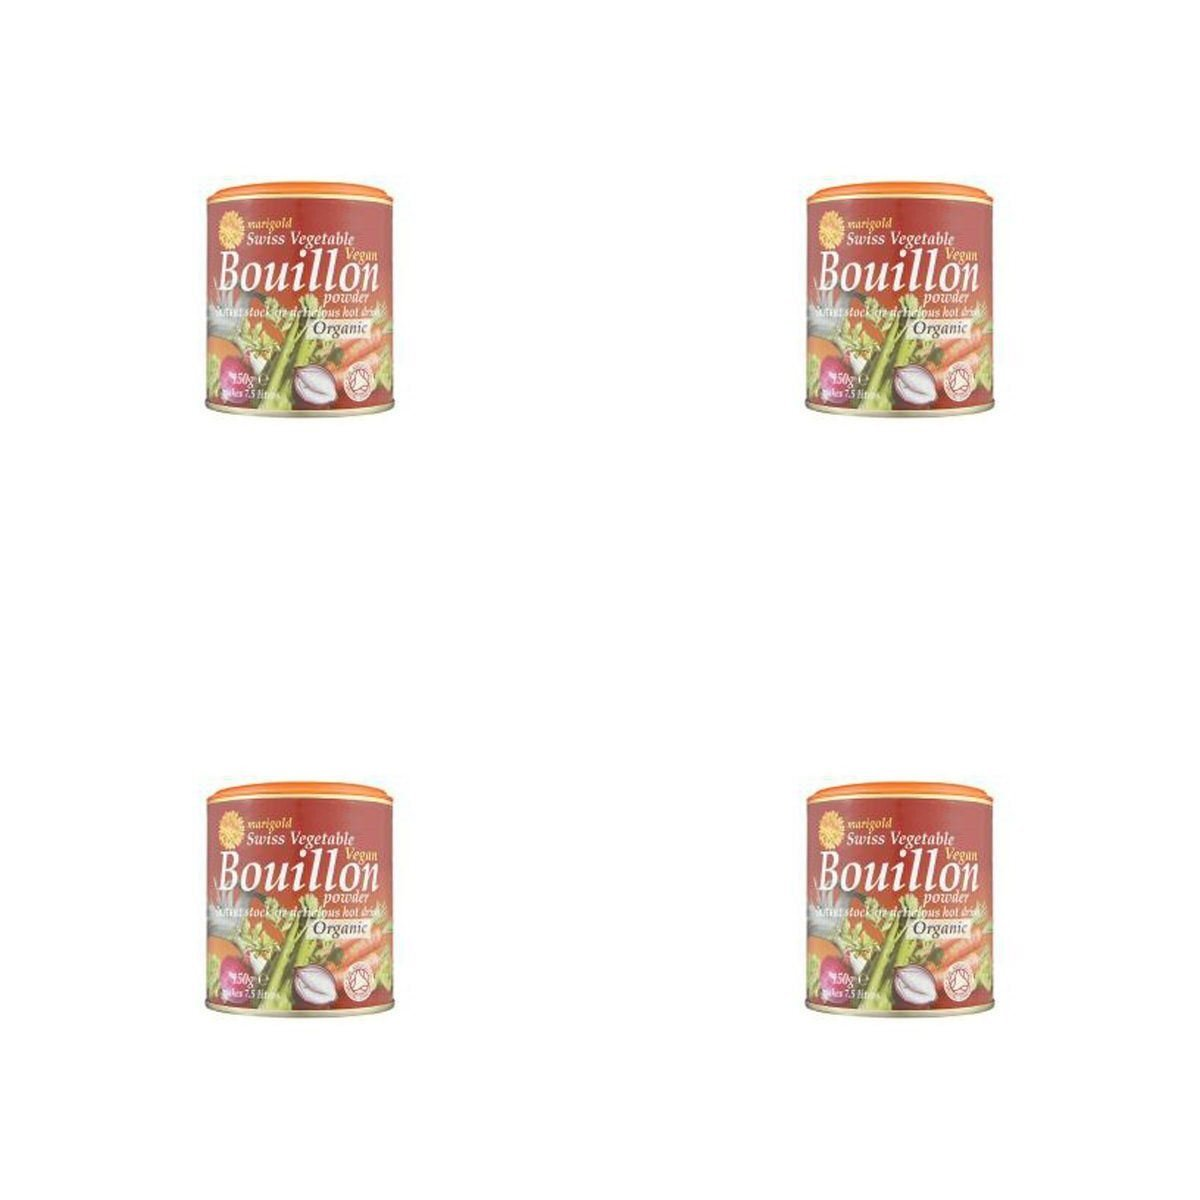 (4 PACK) - Marigold Swiss Vegetable Bouillon - Organic & Vegan| 150 g |4 PACK - SUPER SAVER - SAVE MONEY